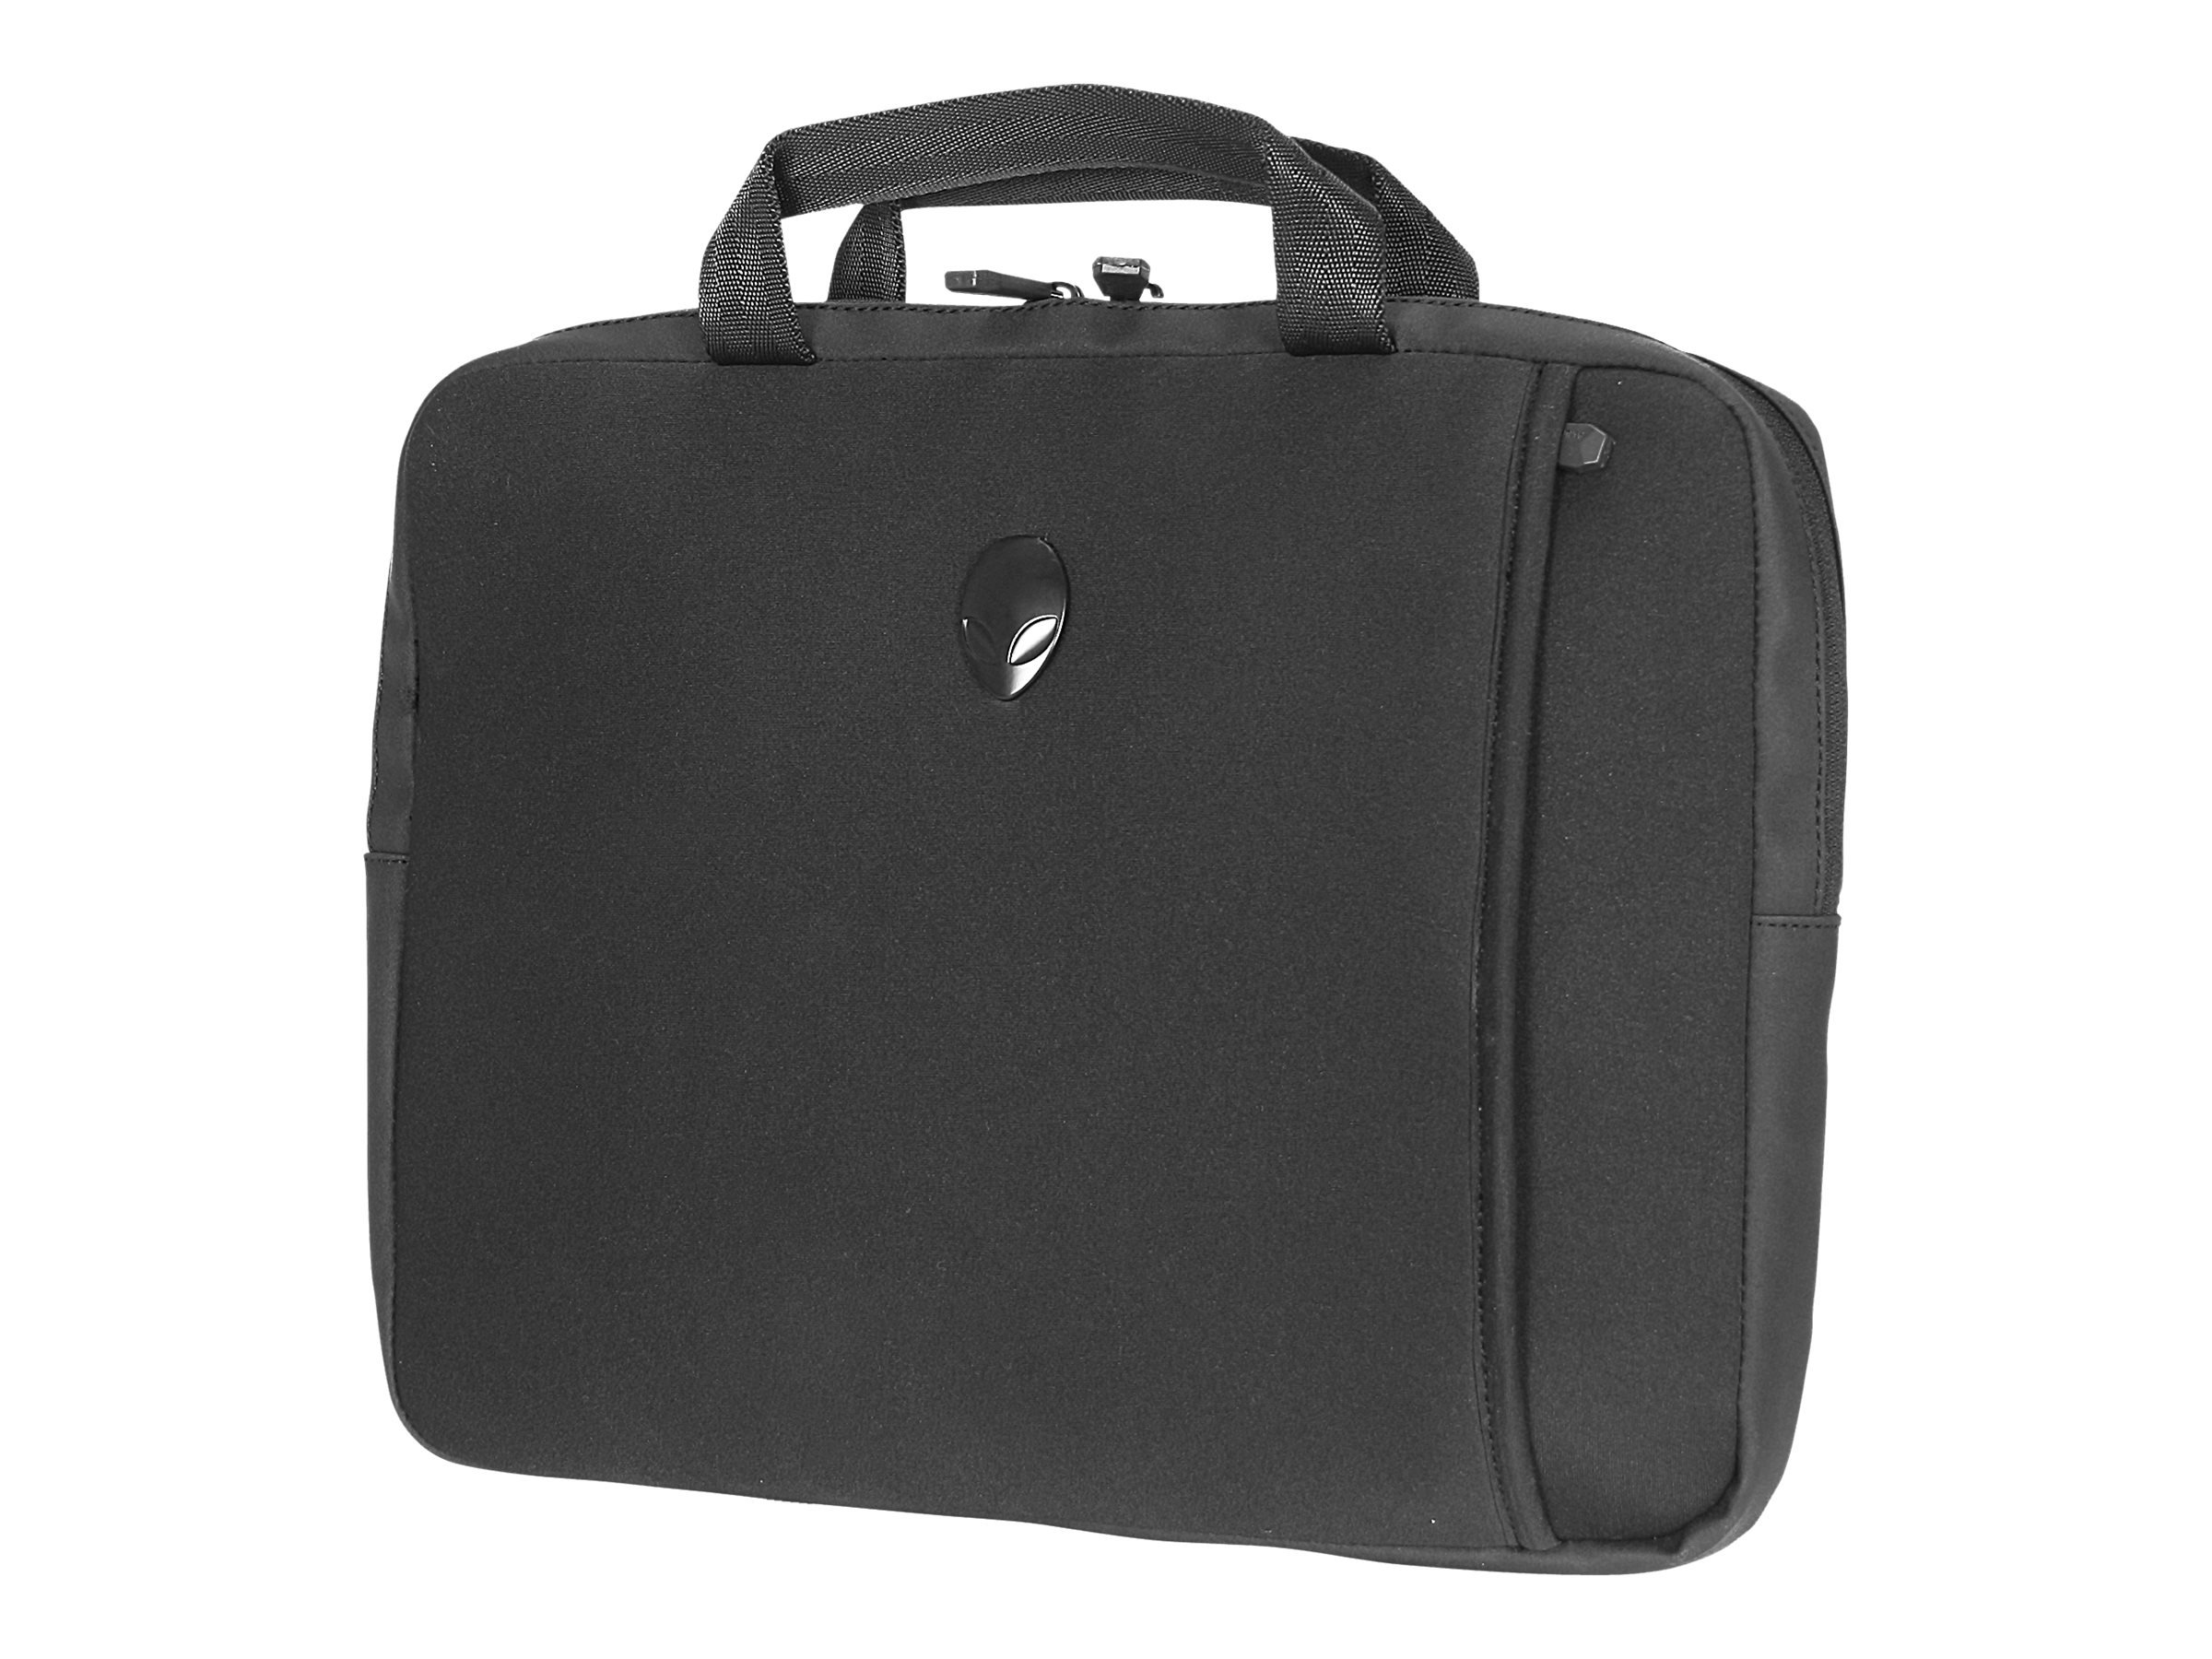 Mobile Edge Alienware Vindicator Neoprene Sleeve for Laptops, AWVNS13, 17963330, Carrying Cases - Notebook